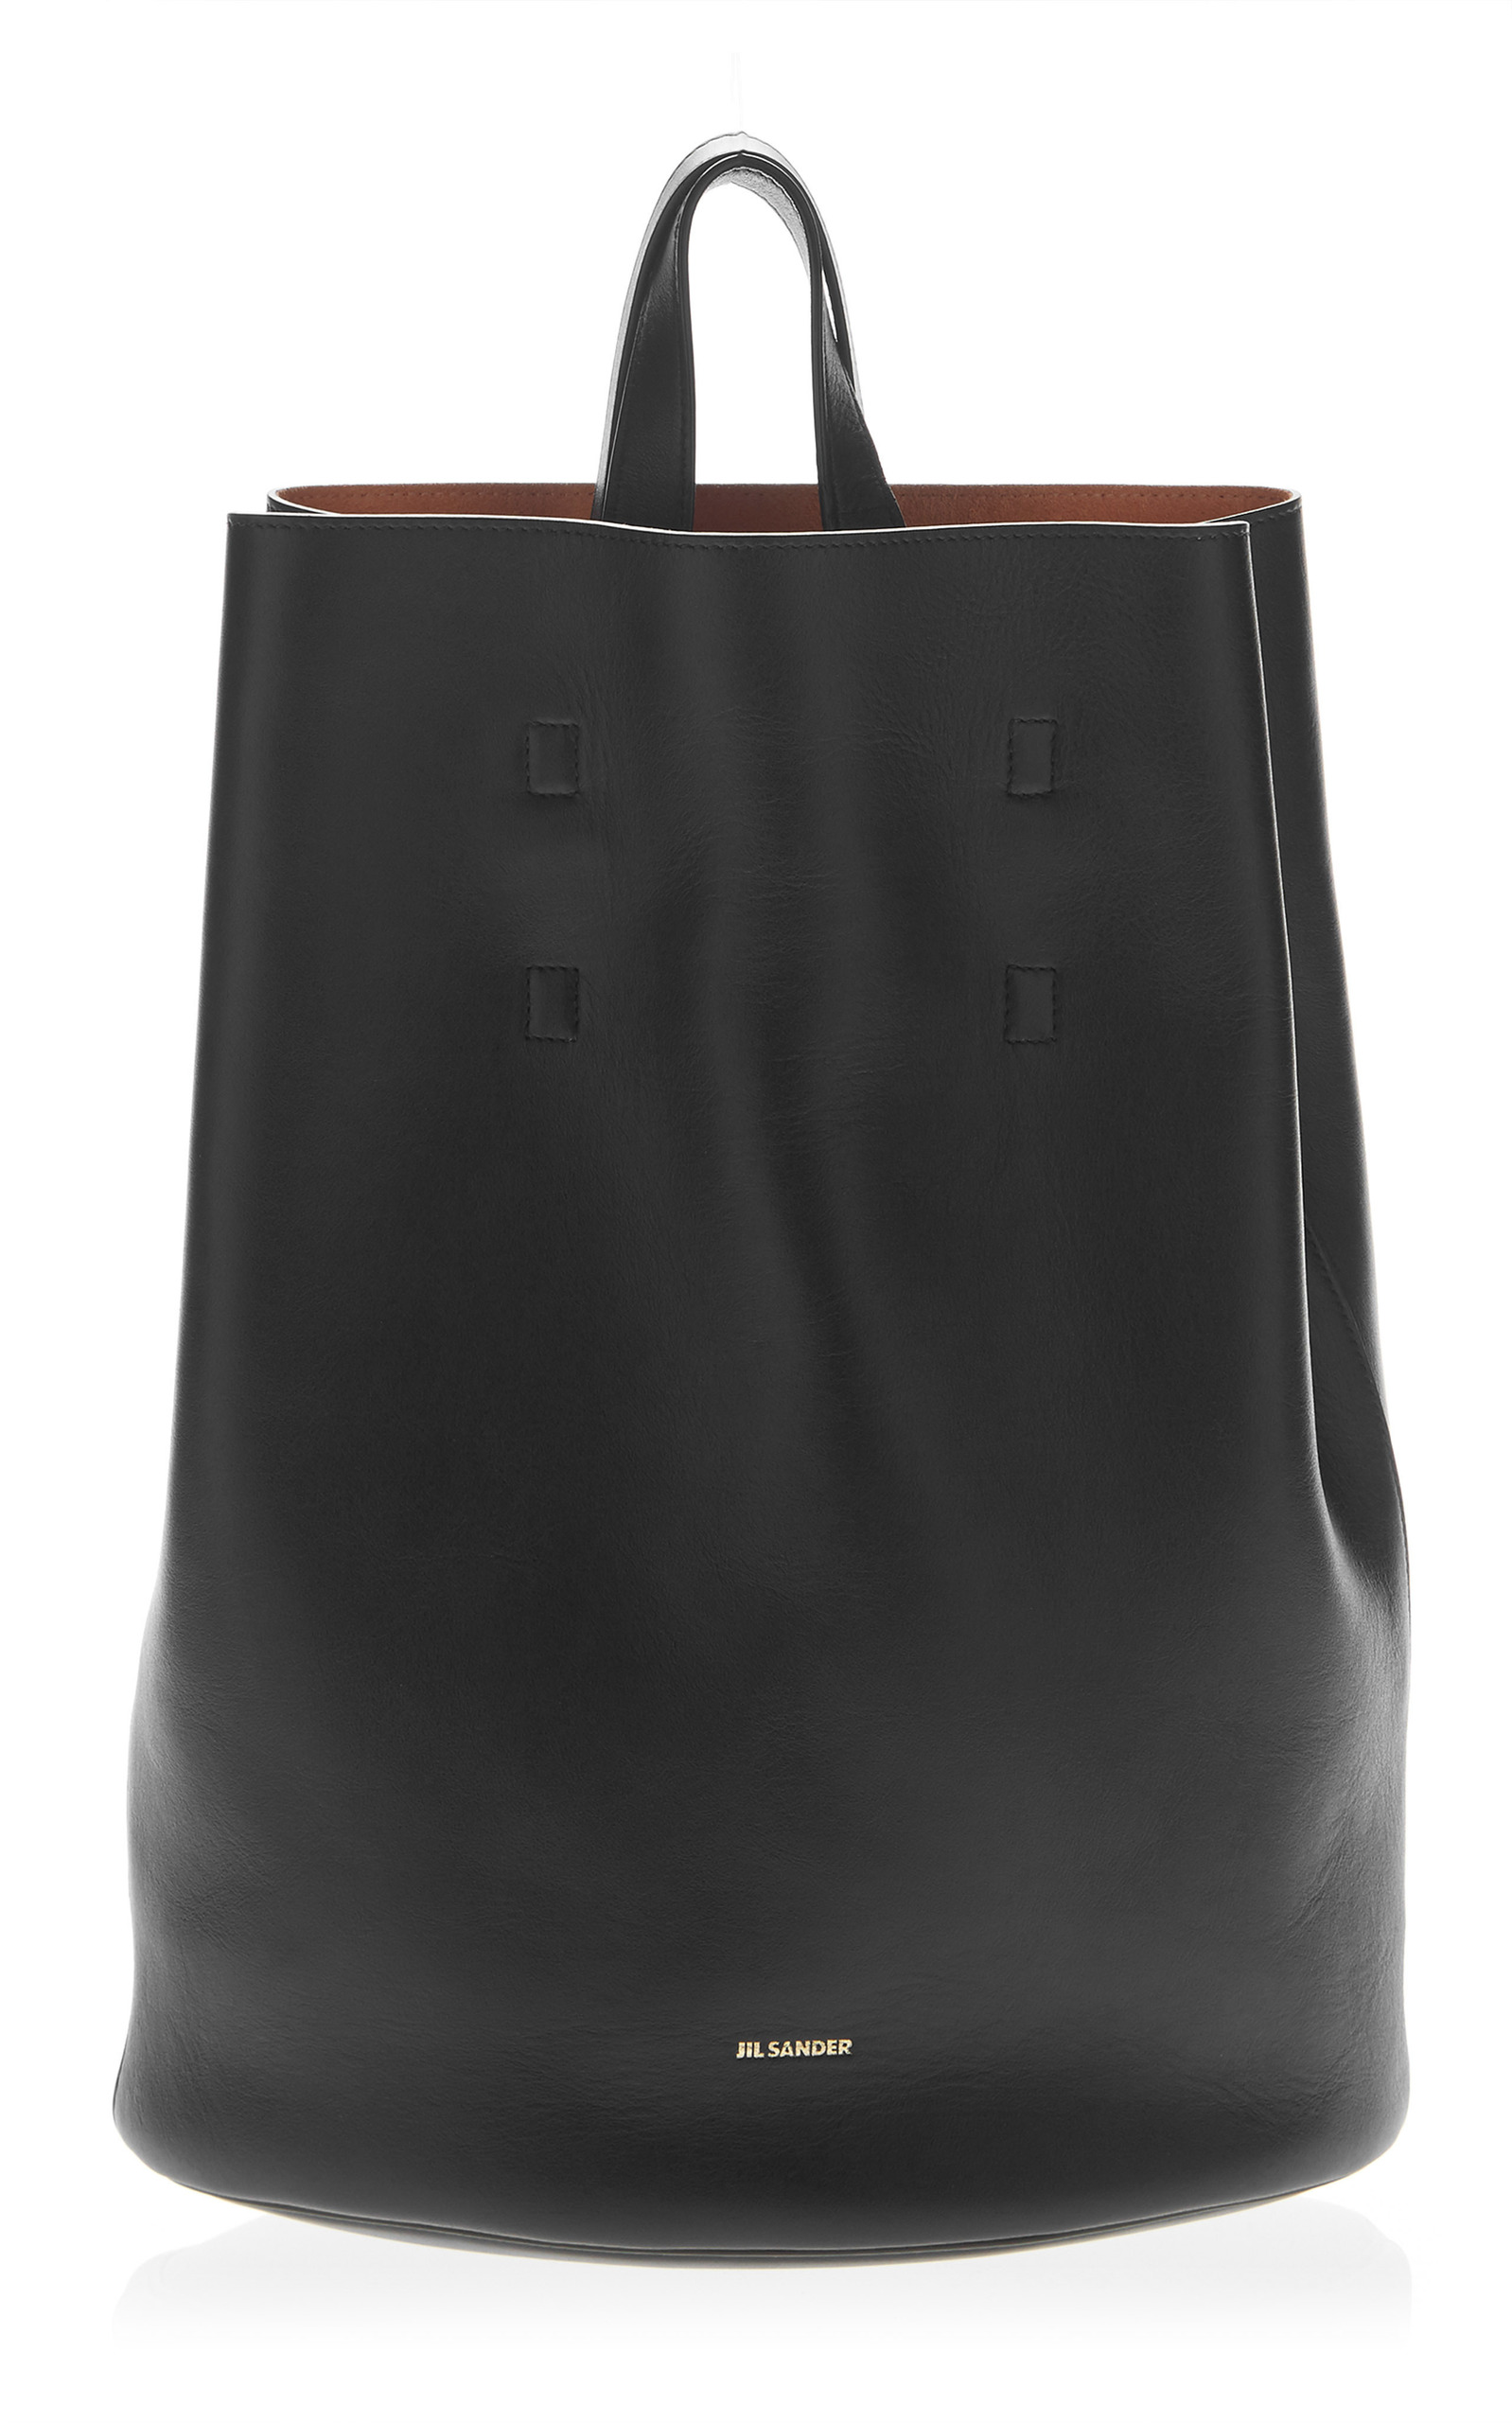 bucket tote - Black Jil Sander Sale Browse Free Shipping Release Dates Discount Best Sale Buy Cheap Find Great Buy Cheap Pay With Paypal c5tFEH